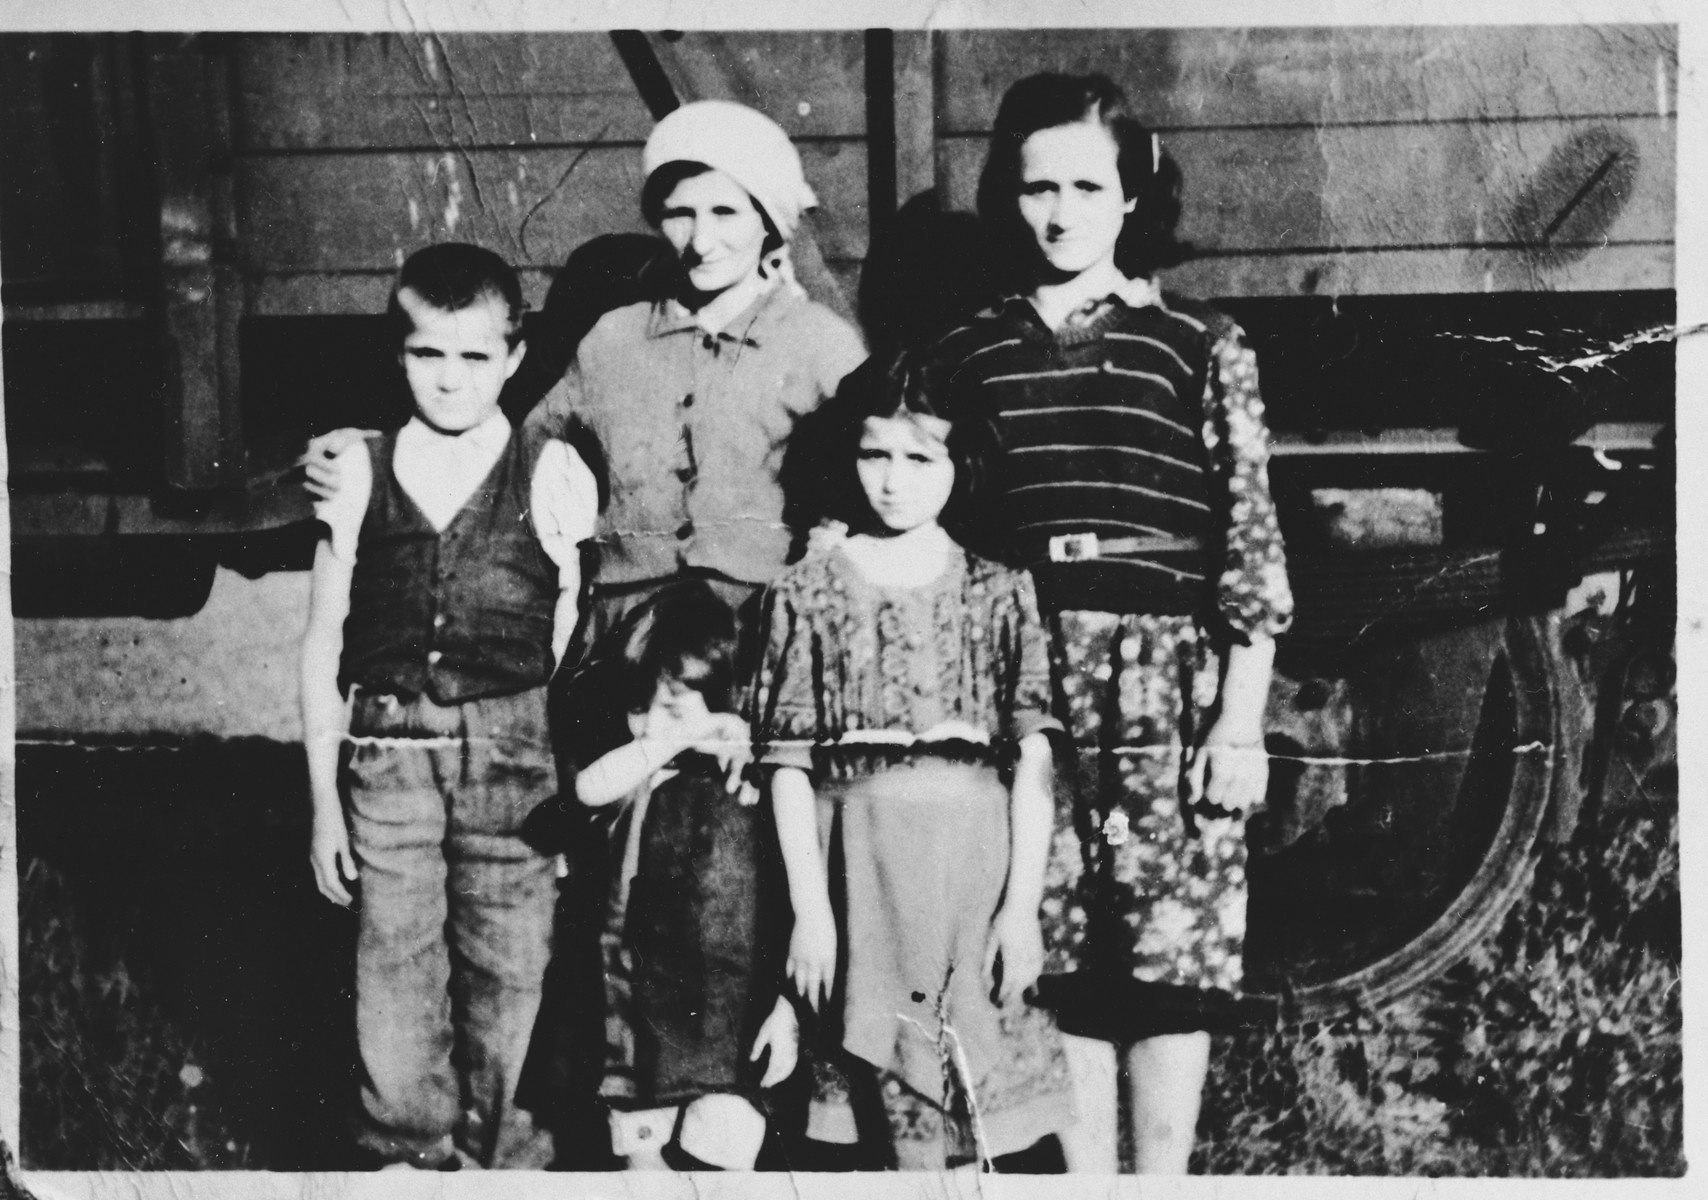 Members of a Serbian family pose in front of a railcar in the Pecana camp in Sisak.  The family is from the village of Gornje Dubrave in the district of Ogulin.  Pictured are: Staka Visnjic (b. 1903), Milica (b. 1926), Nikola (b. 1931), Ankica (b. 1932), and Mara (b. 1939).